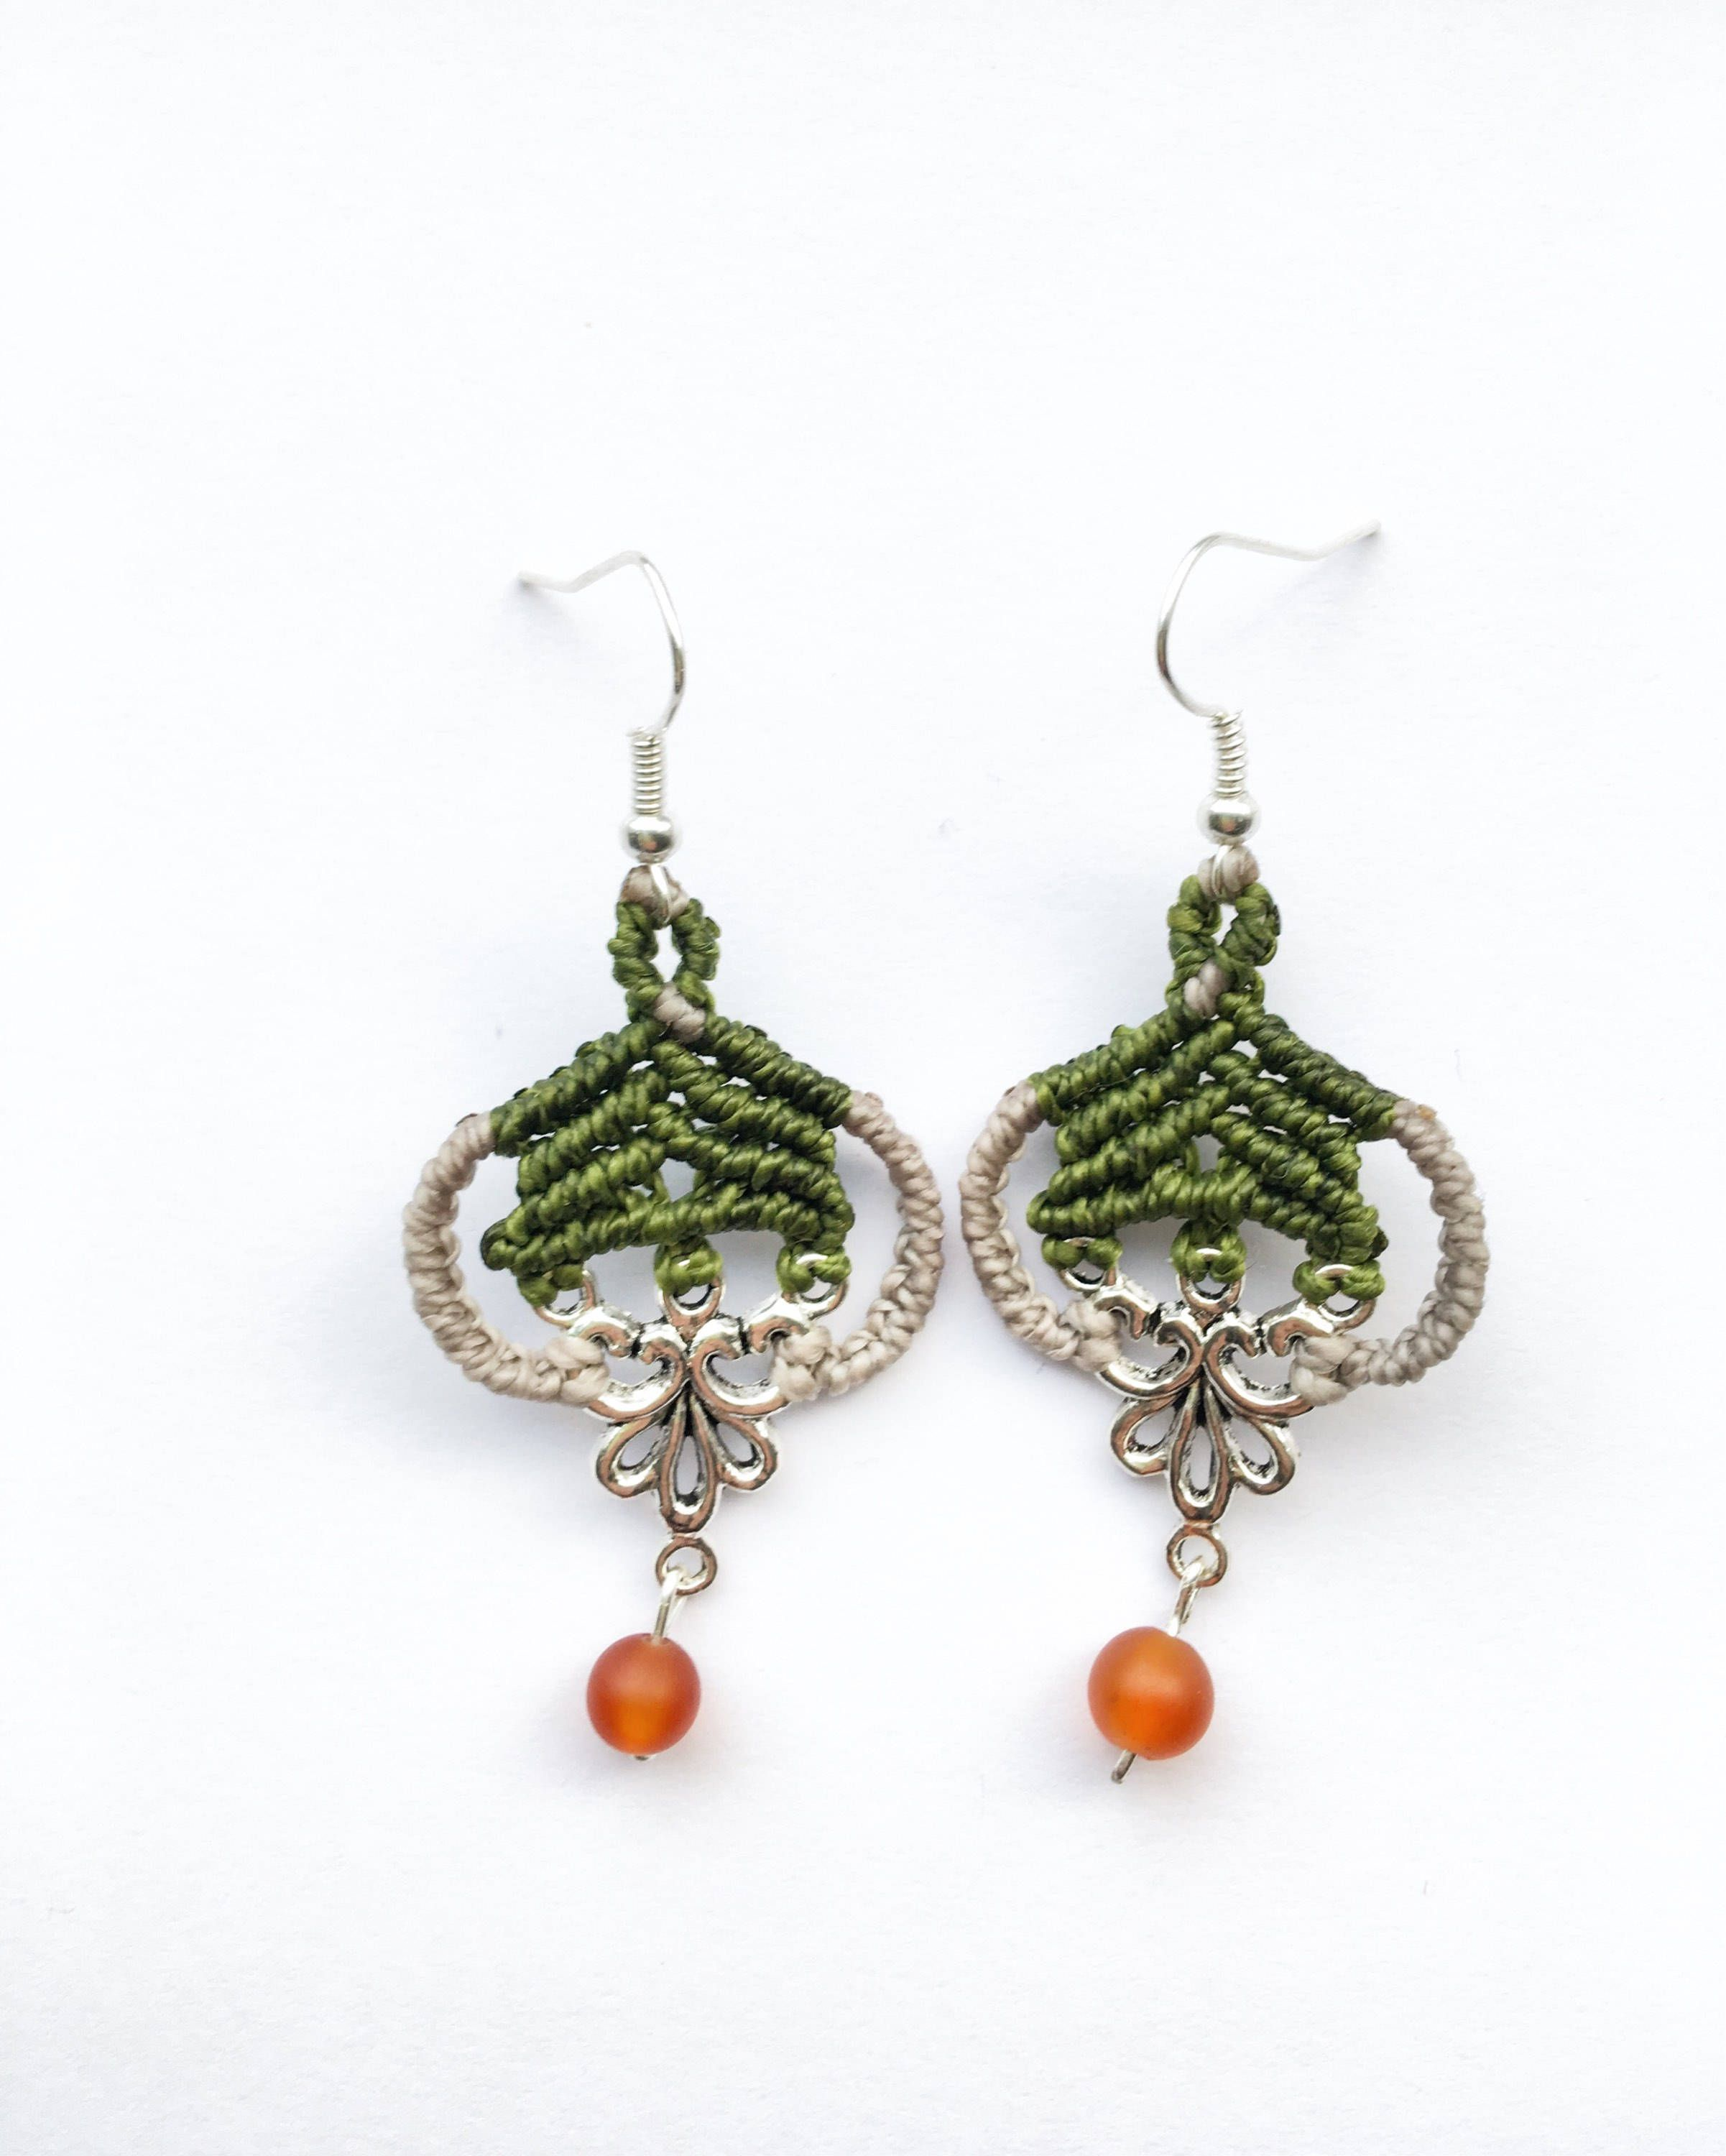 trendy green silver jade jewellery peacock productgfx sea arts handmade anwitaa earrings casual img collections artisan